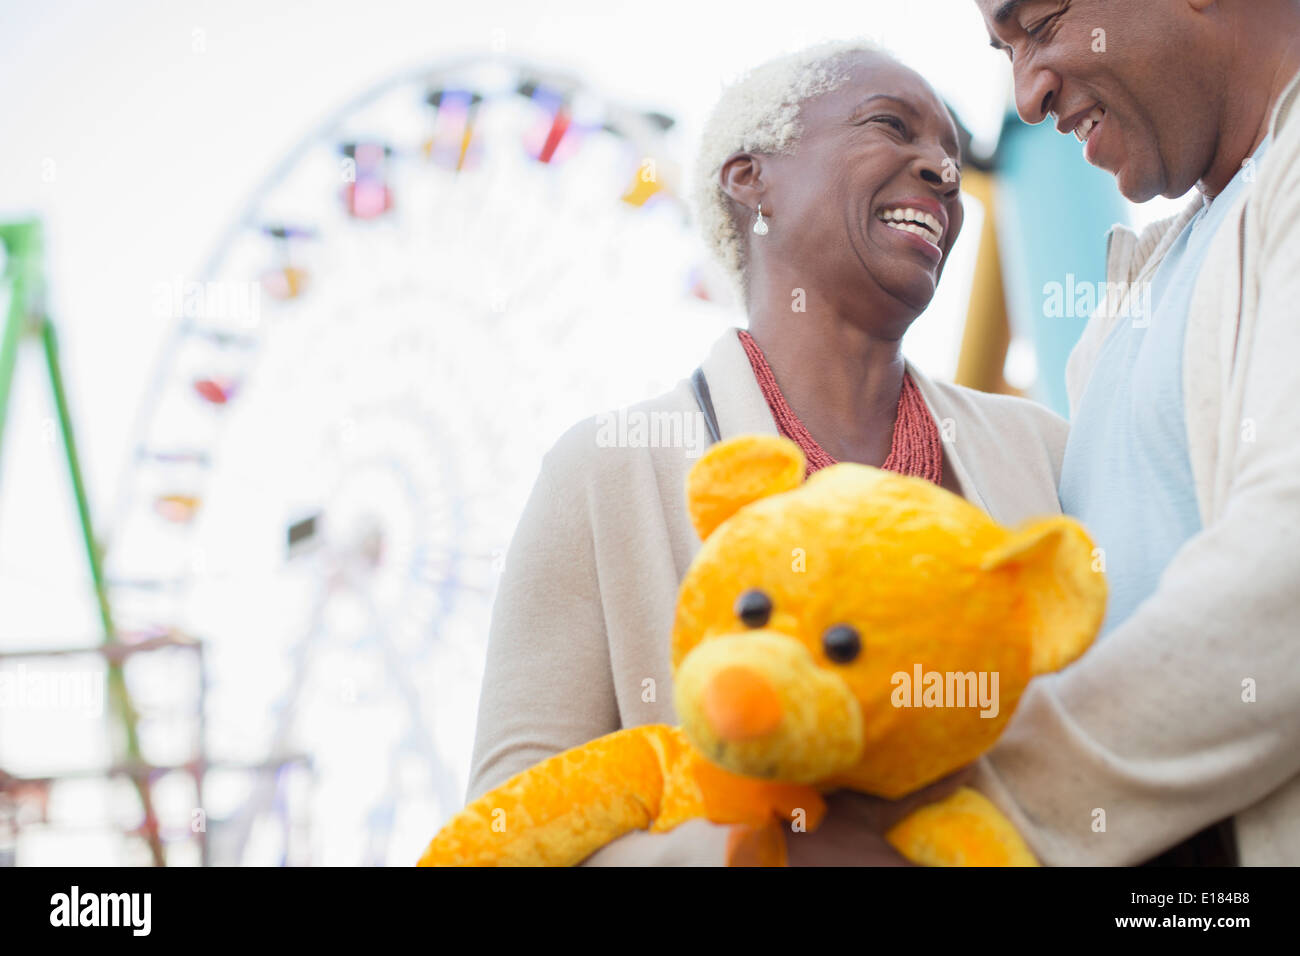 Senior couple with teddy bear hugging at amusement park - Stock Image